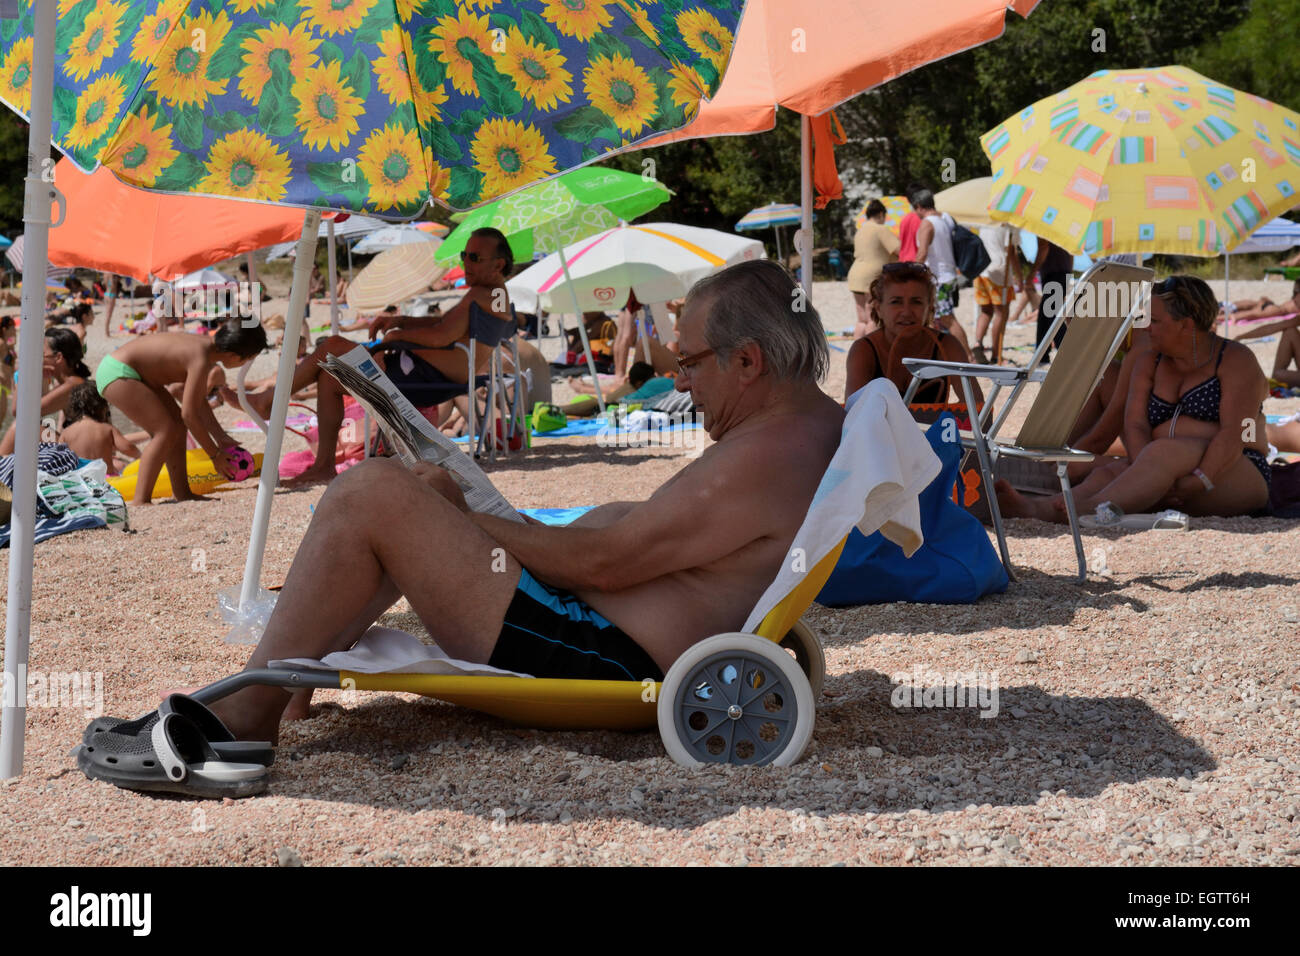 Italian Tourist in Sardinia sat on beach reading the paper - Stock Image